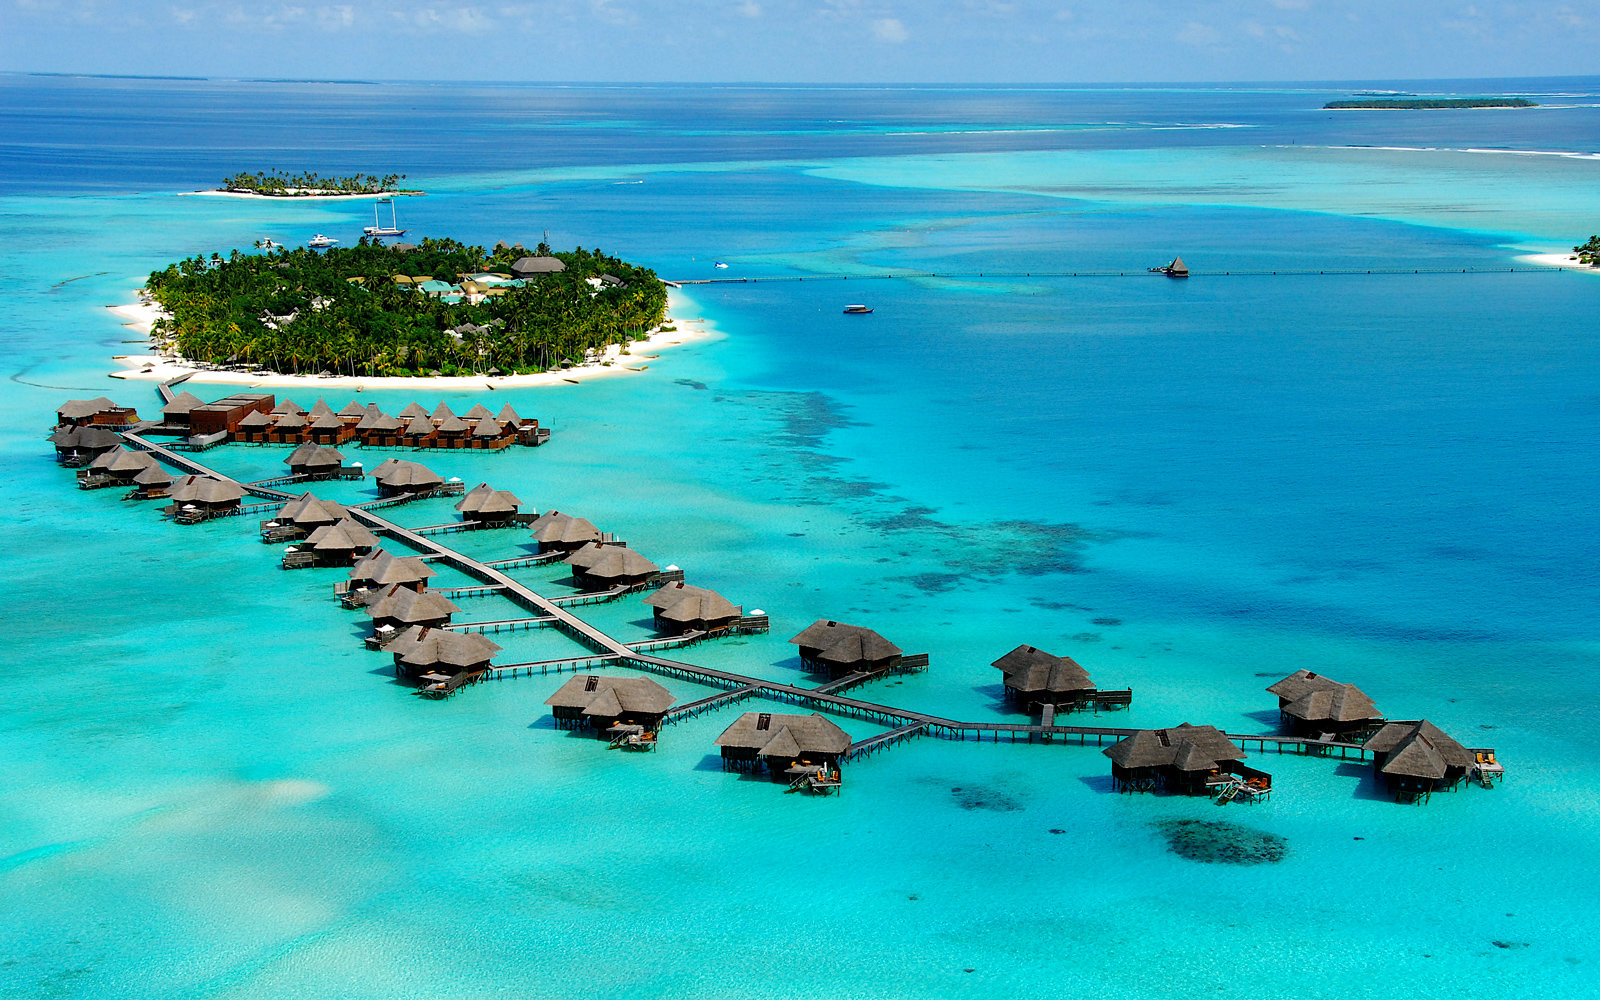 Maldives, South Ari Atoll, Rangali island, Hotel Resort & Spa Hilton.